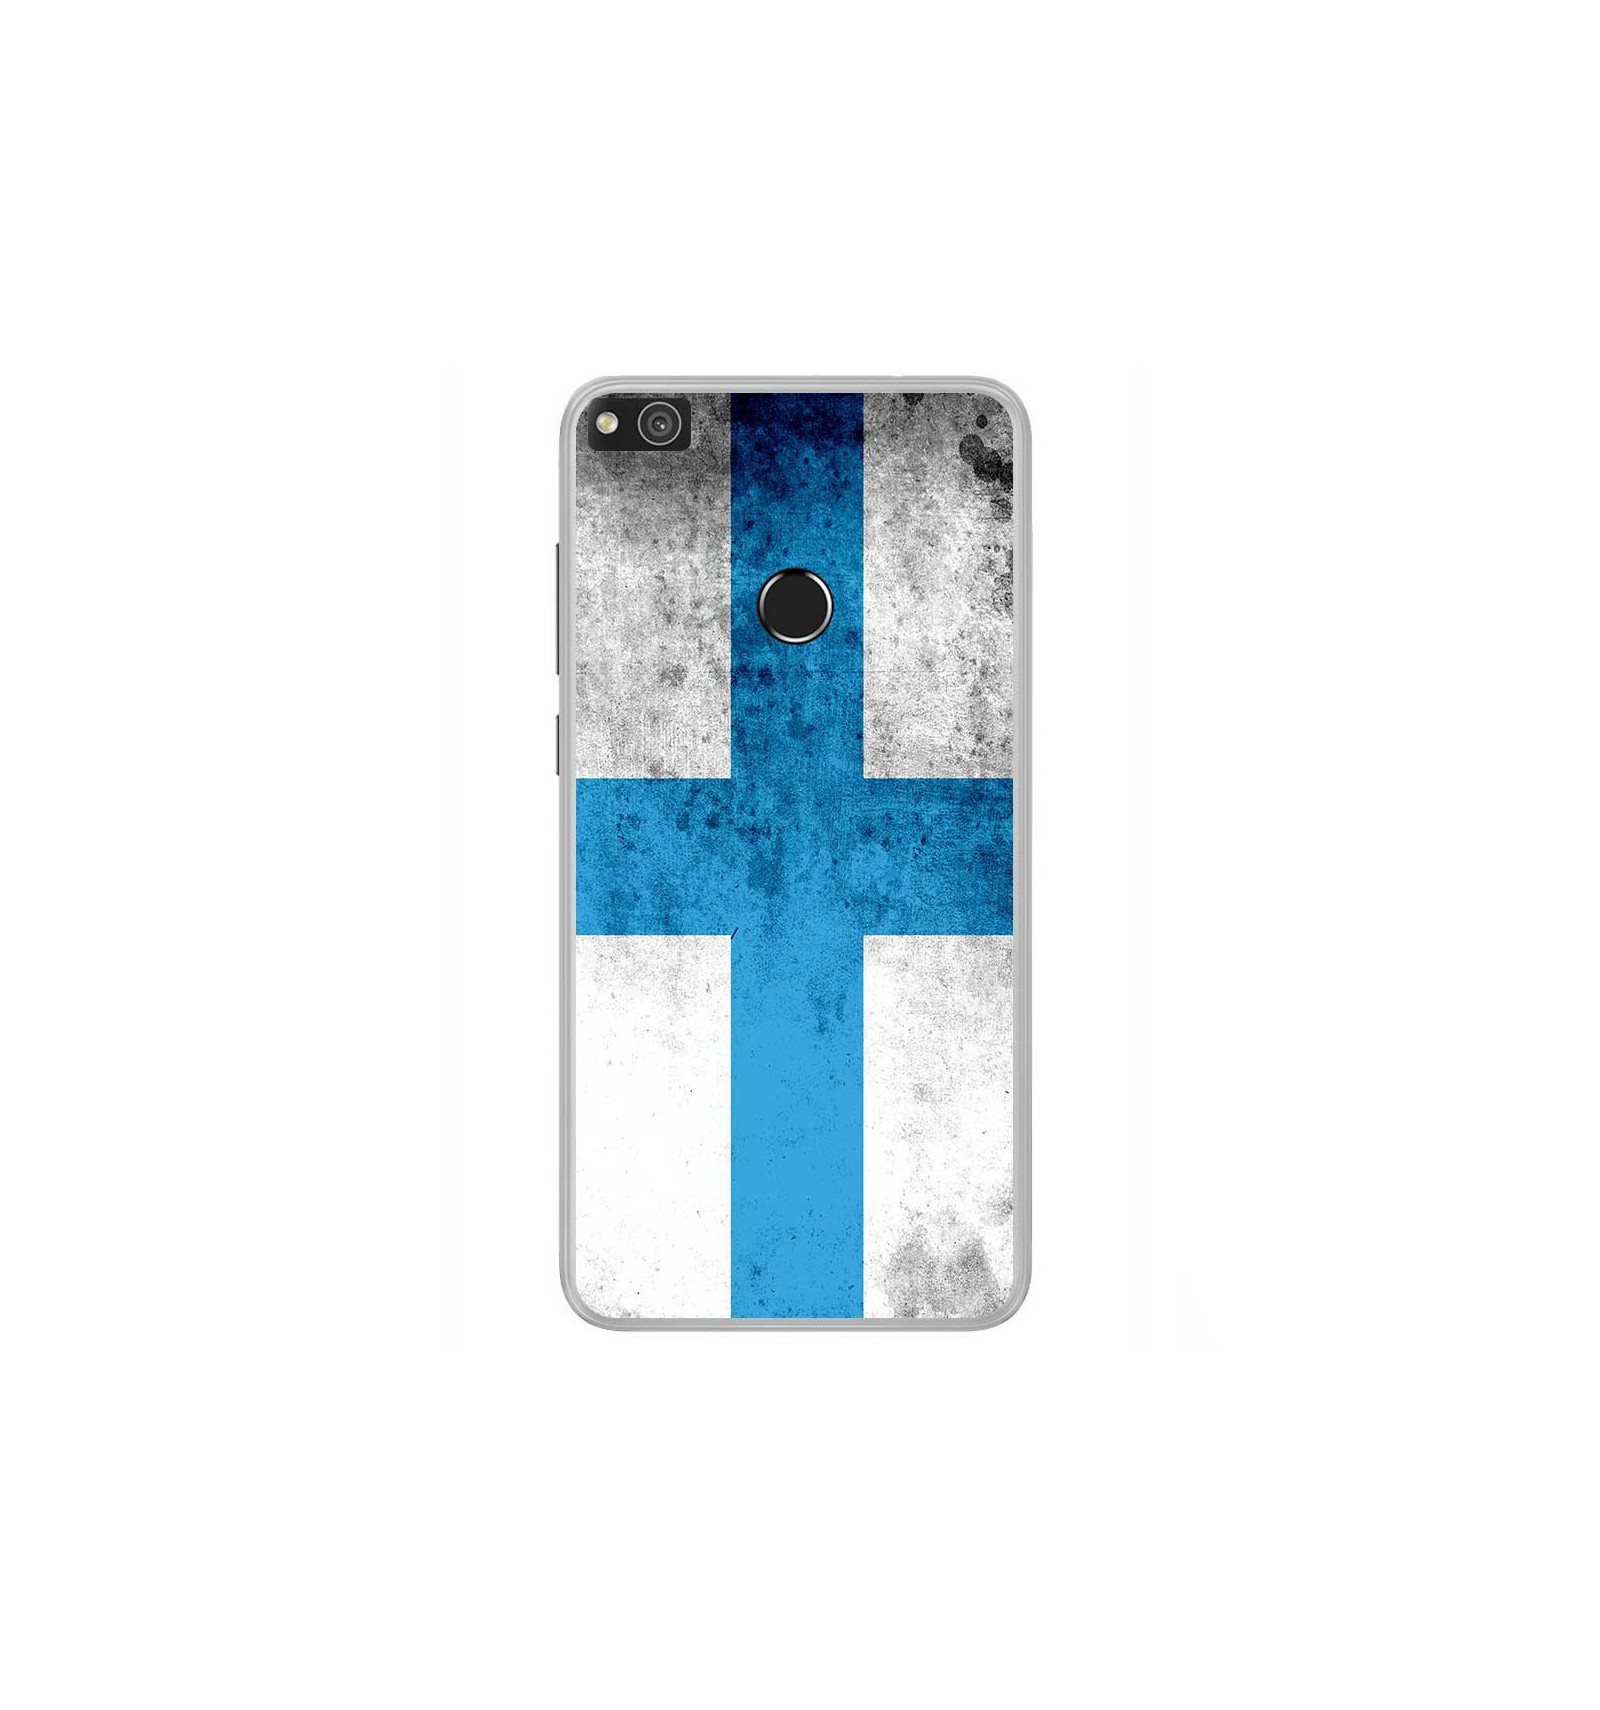 coque huawei p8 lite priceminister